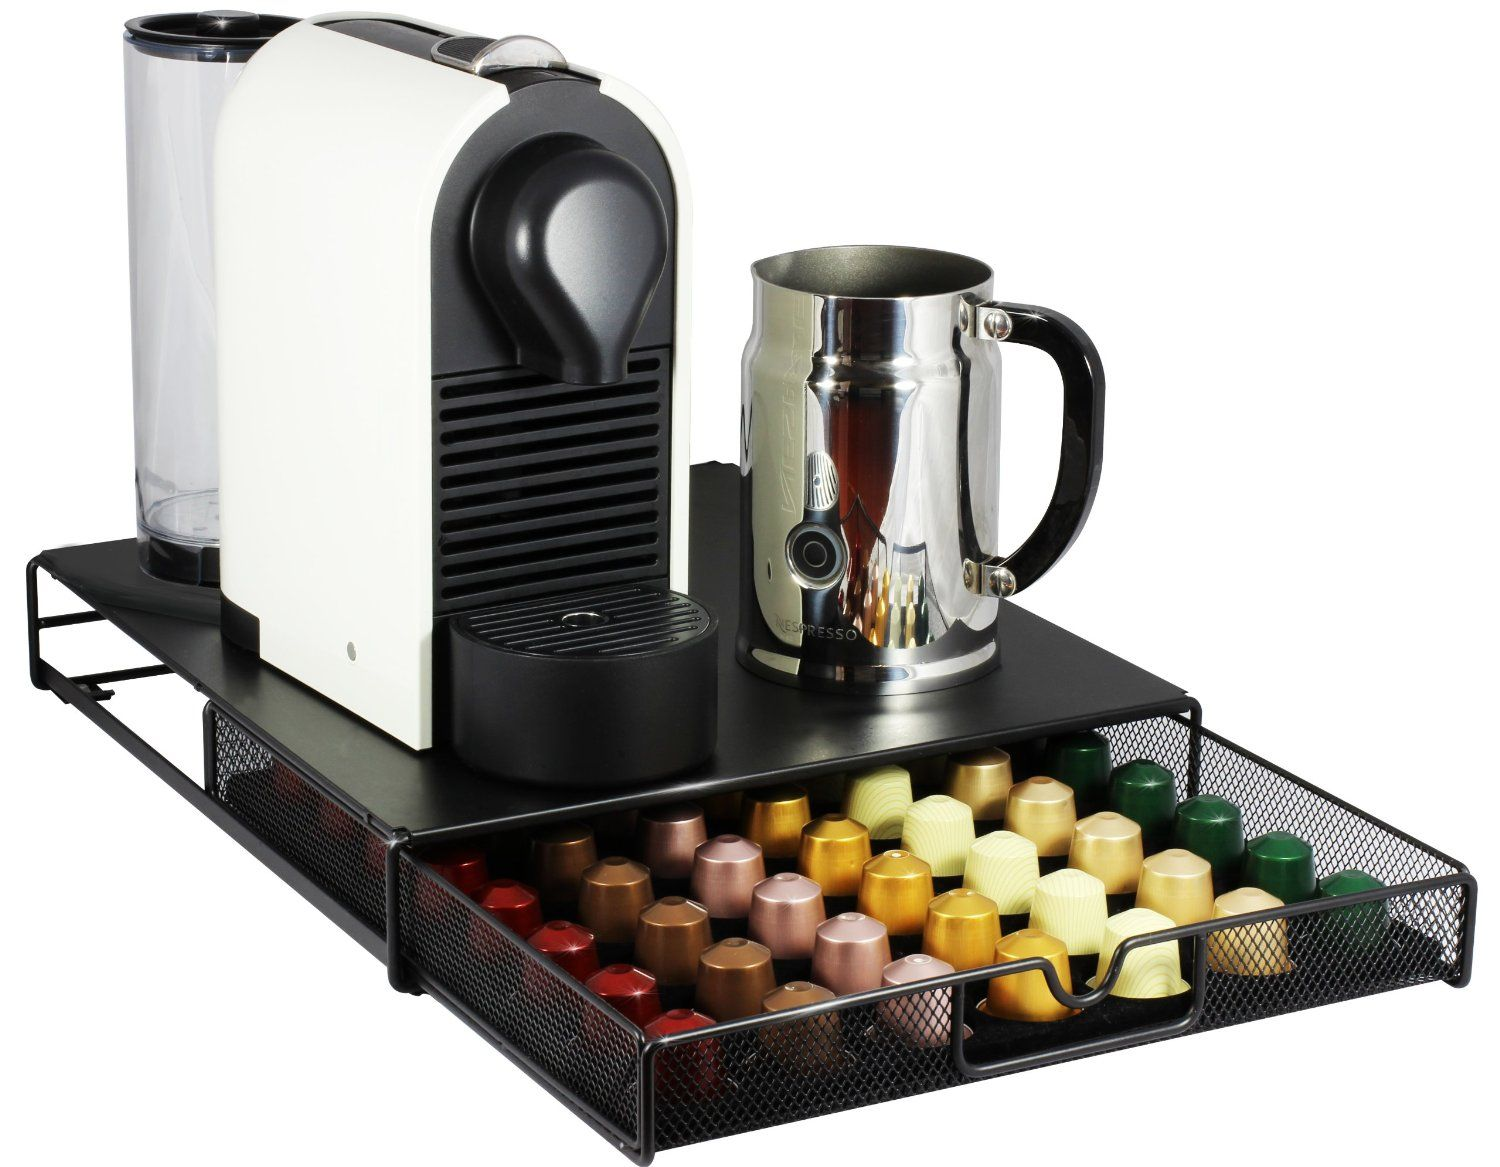 Le Meilleur Decobros Coffee Pod Storage Mesh Nespresso Drawer Holder Ce Mois Ci